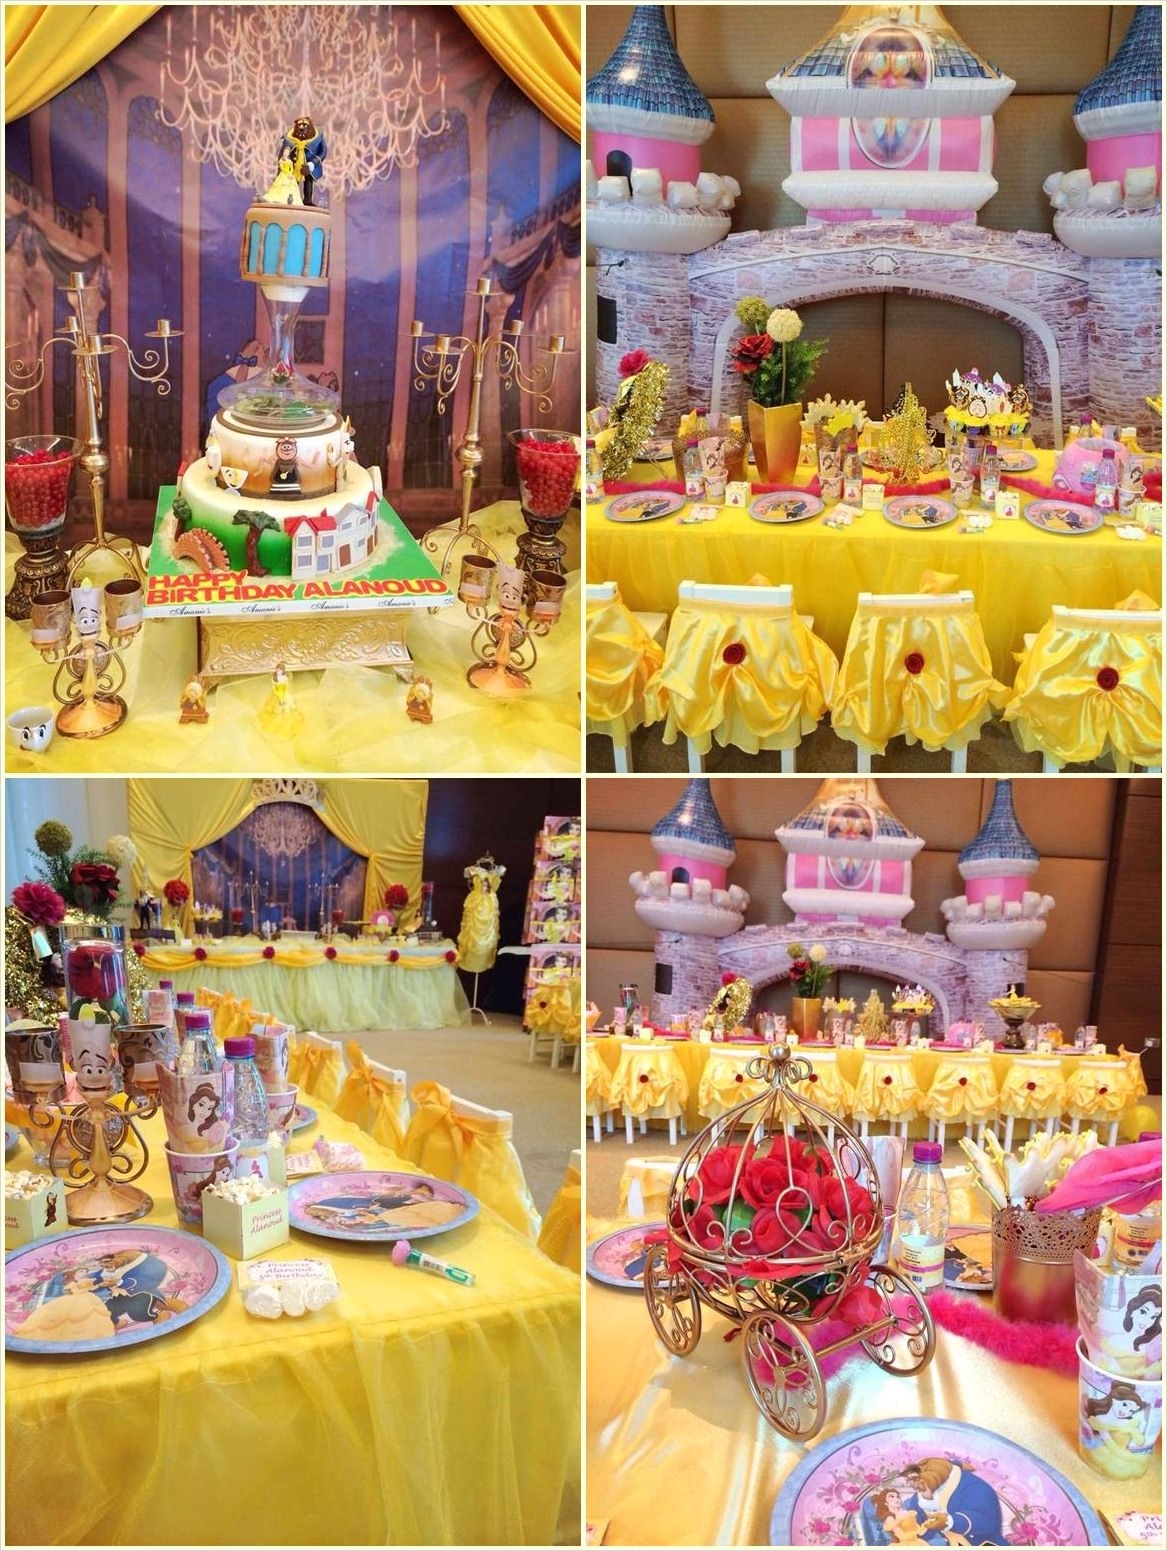 35 Beauty and the Beast Decorations Ideas 32